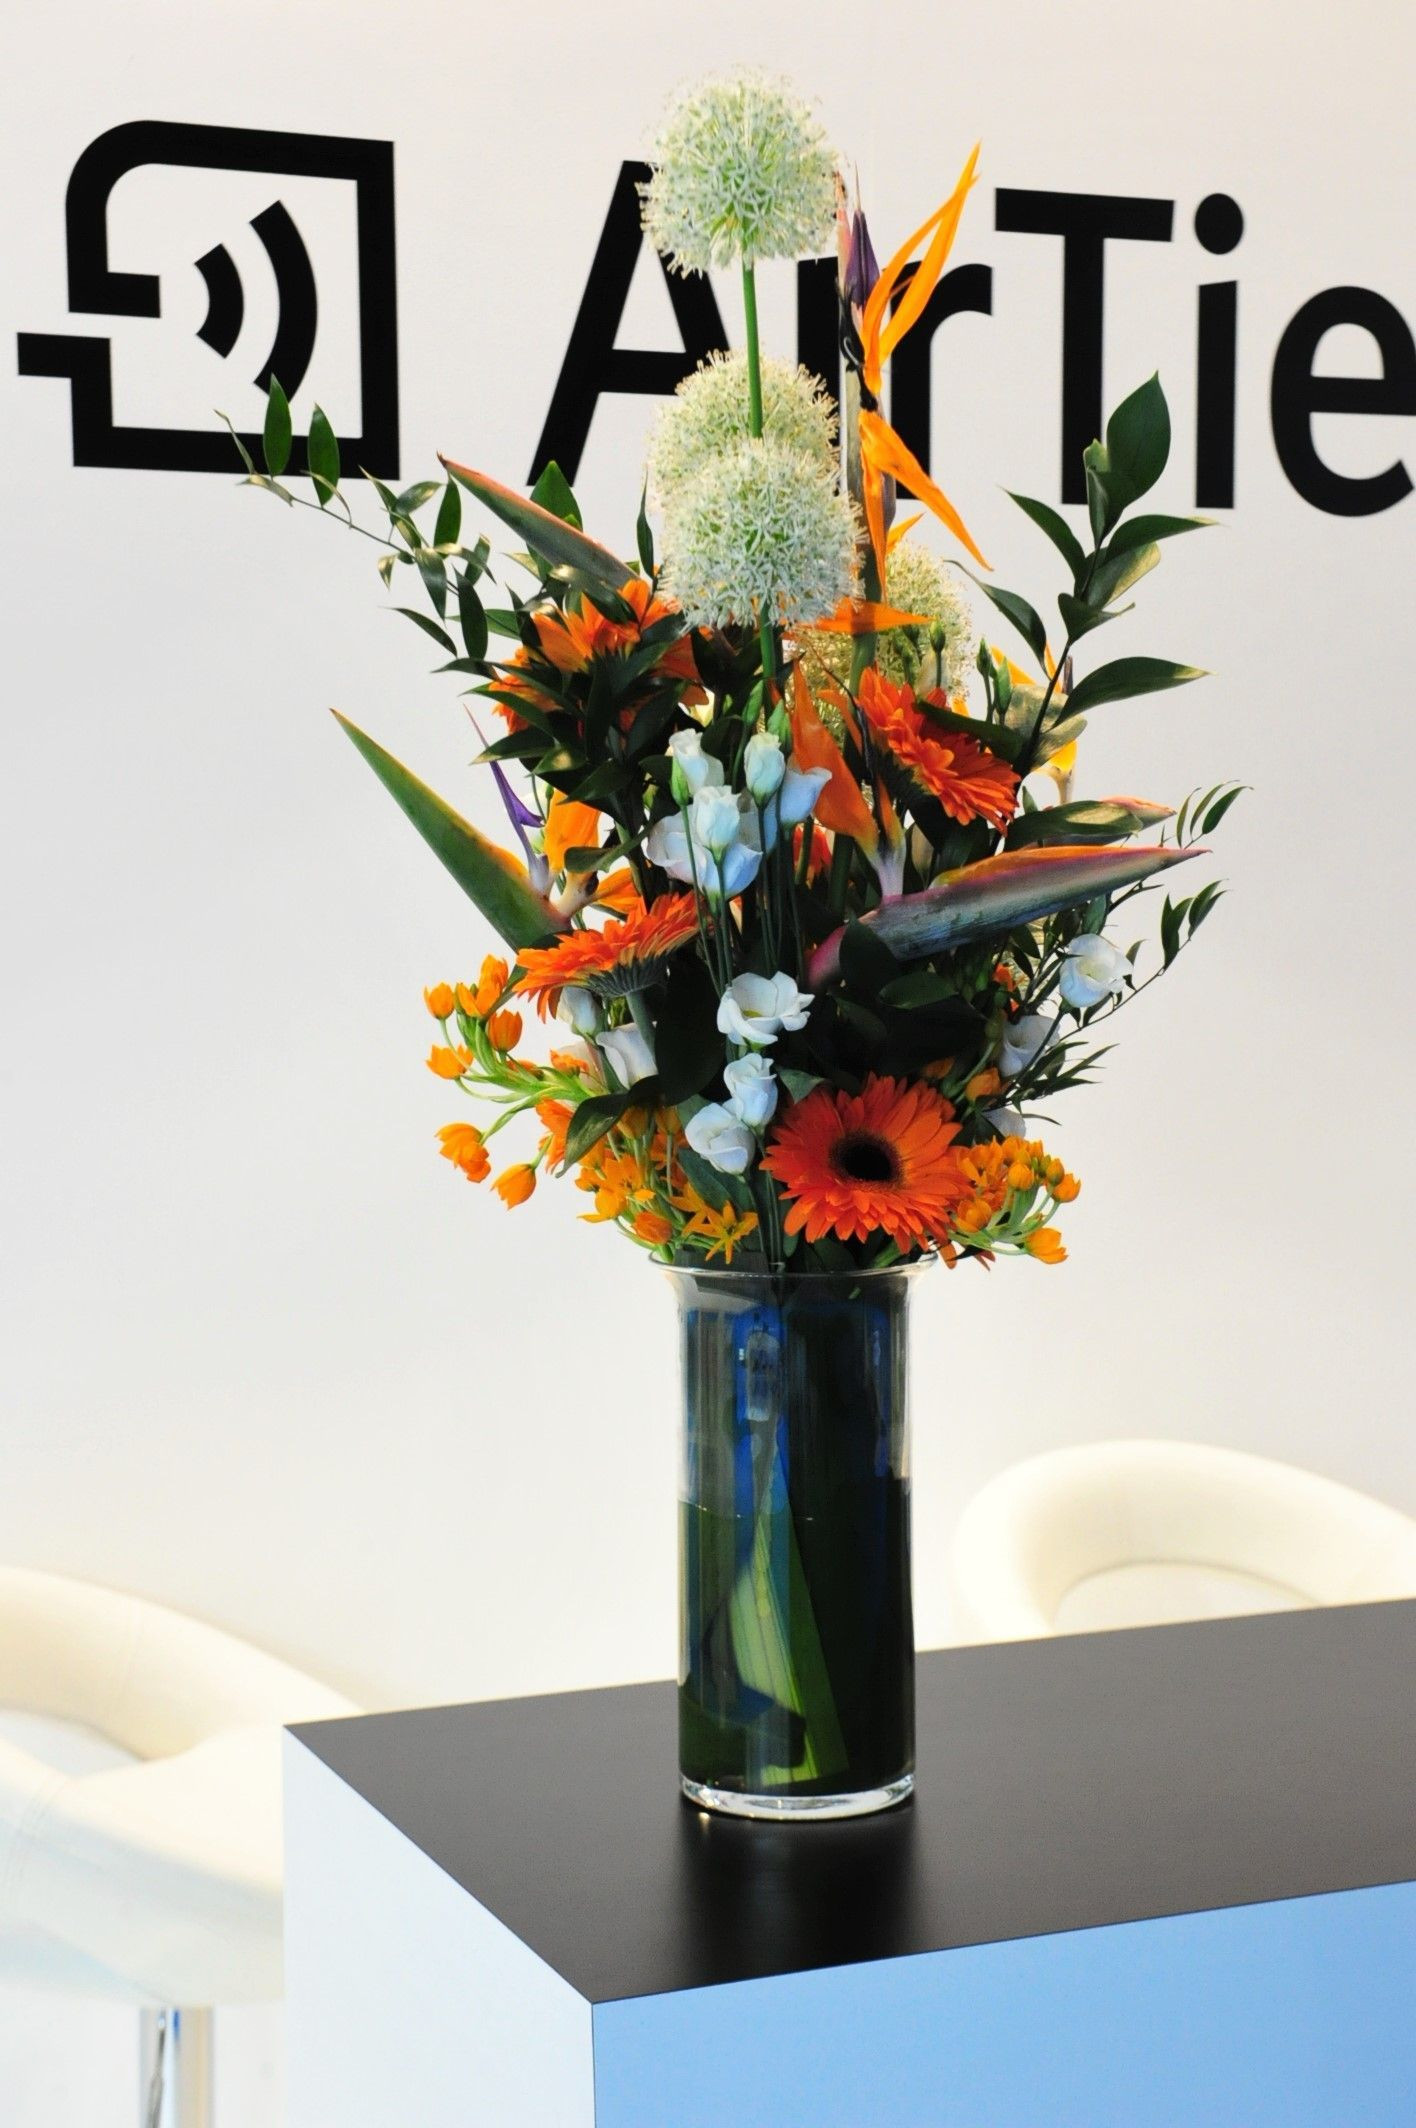 floral vases and containers wholesale of 21 flower arrangement in vase the weekly world with 6 od orange stock bird of paradise orange gerbera white